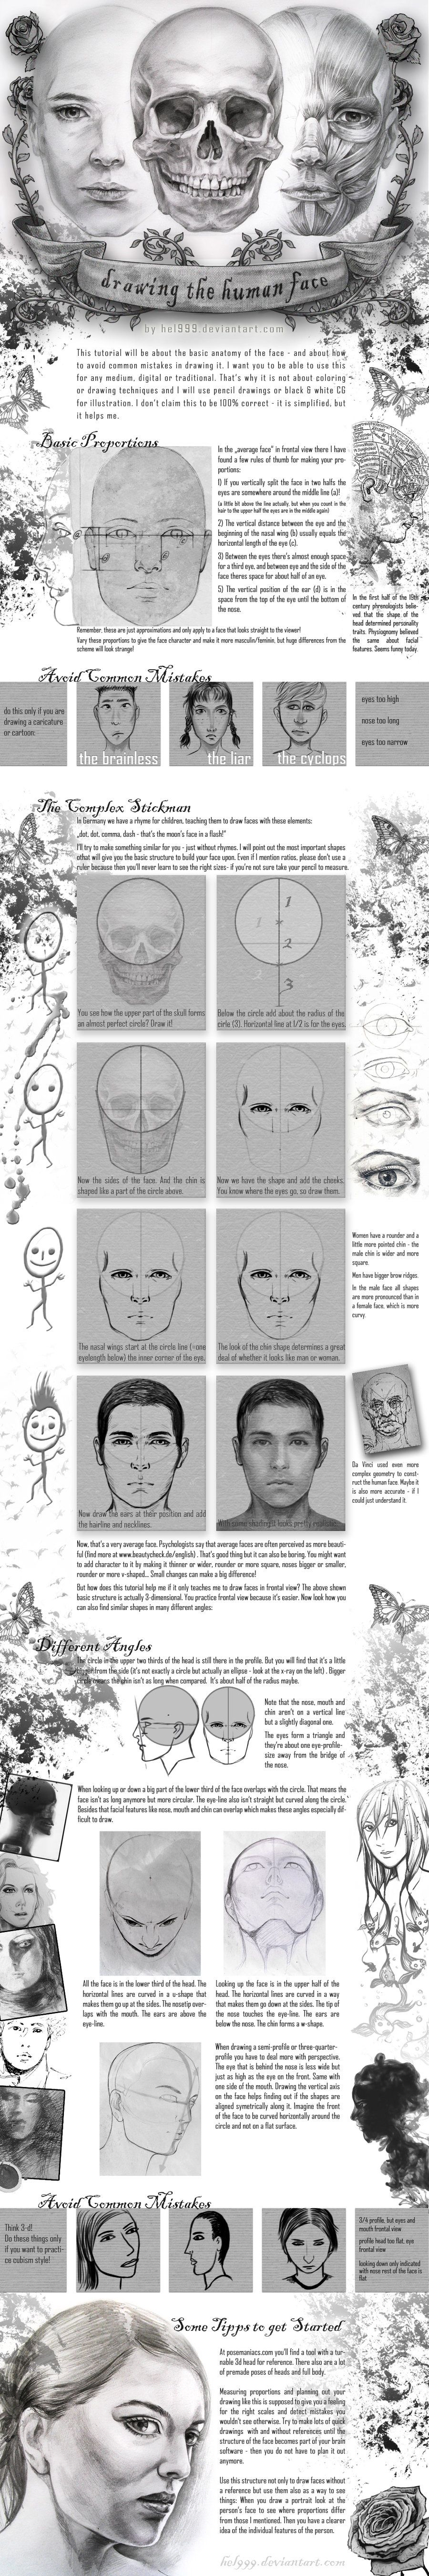 Face Drawing Tutorial by hel999.deviantart.com